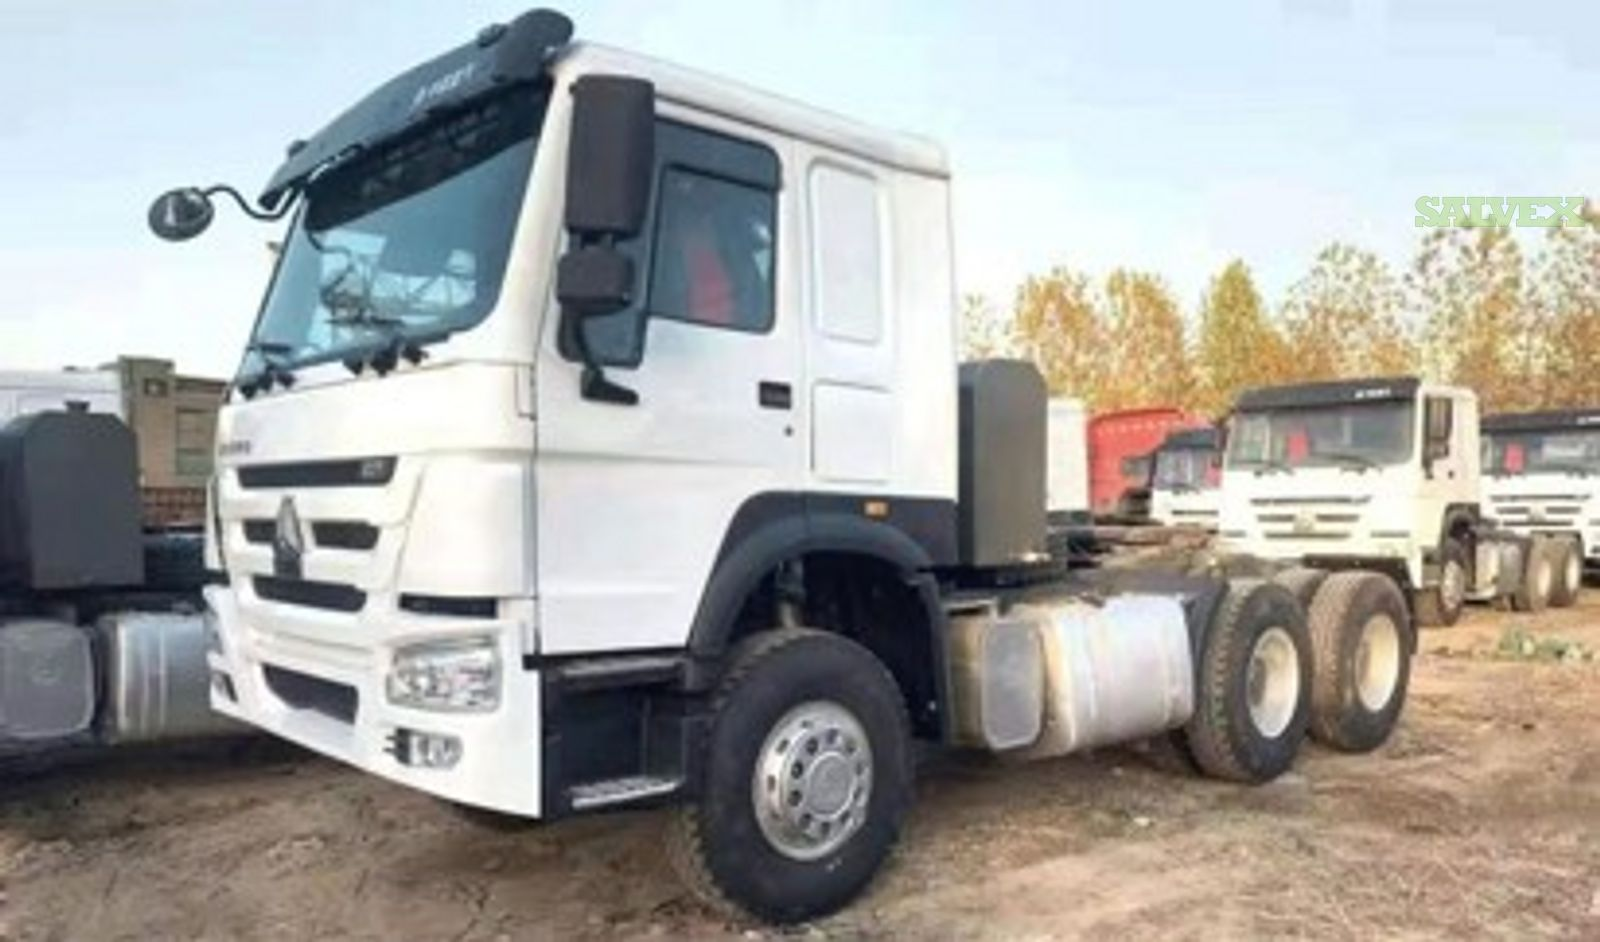 SINOTRUK HOWO 6x4 Tracktor (Heavy Duty/Agricultural) 2014